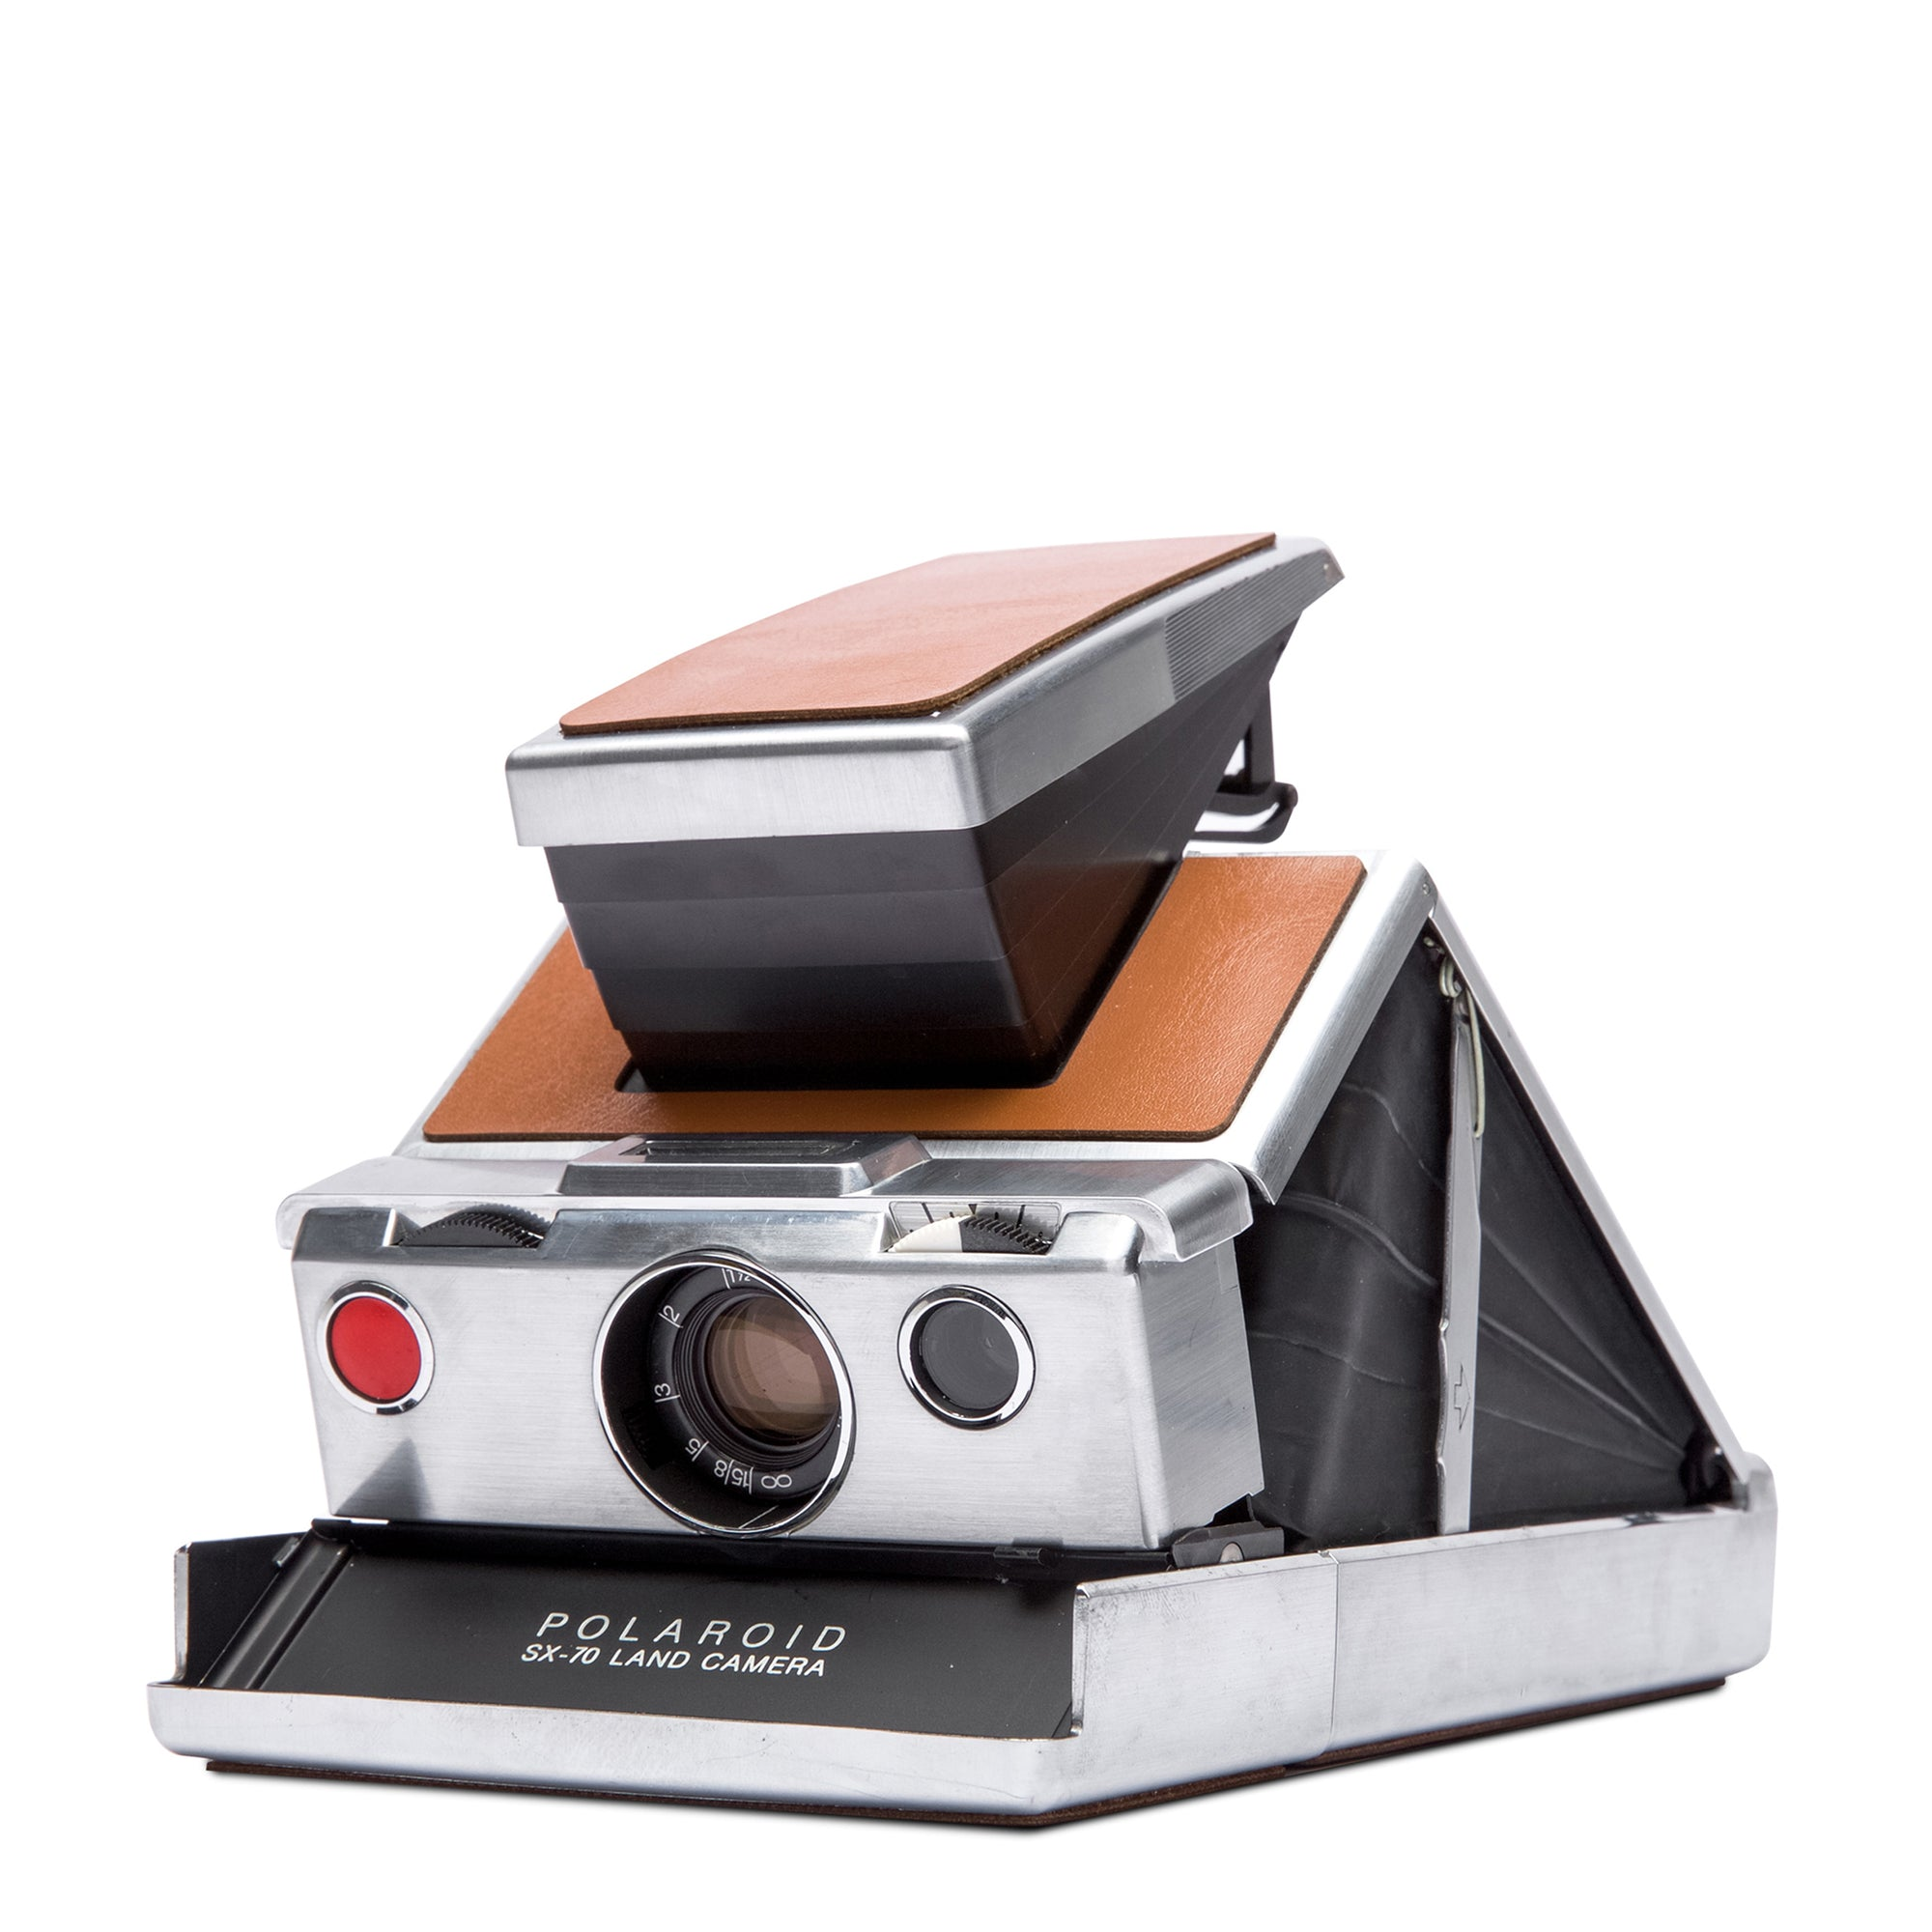 Polaroid SX70 Camera full view